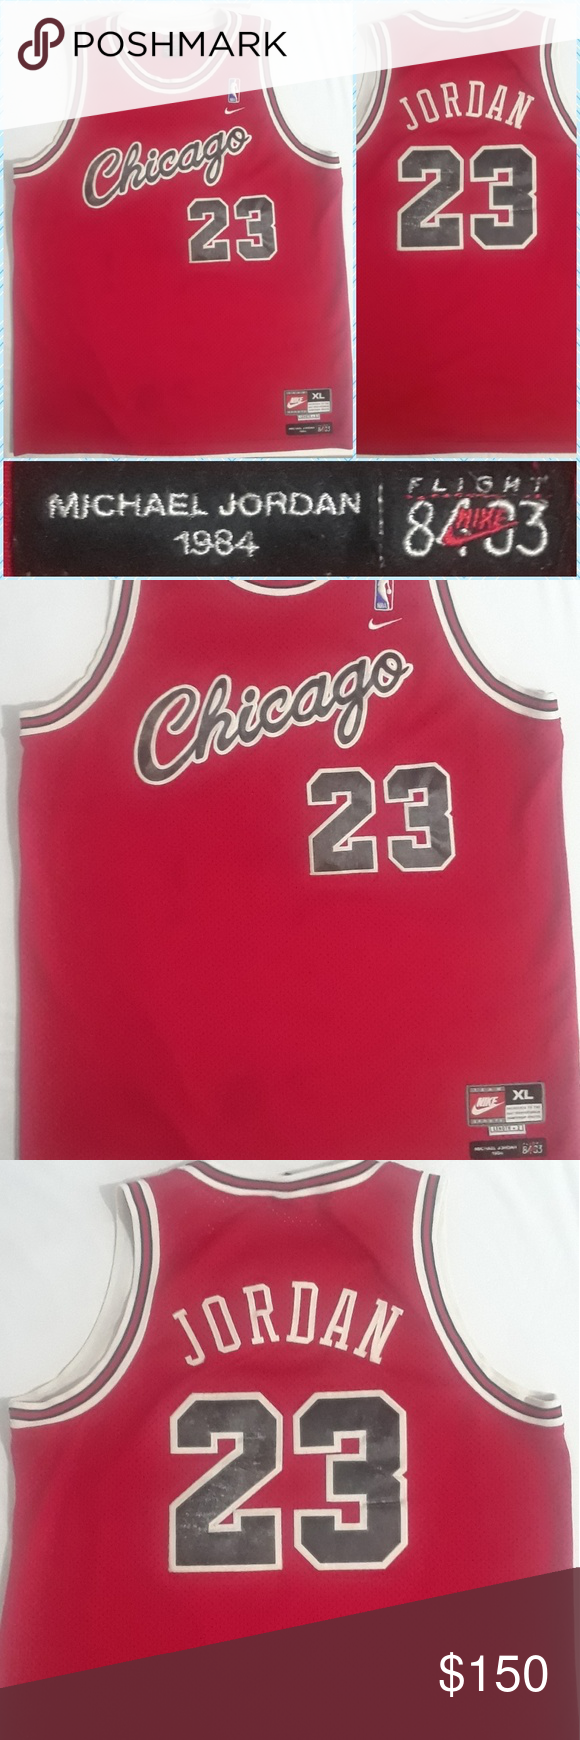 first rate c21d7 fe264 Nike Michael Jordan 1984 Chicago Rookie Jersey Show Your A ...